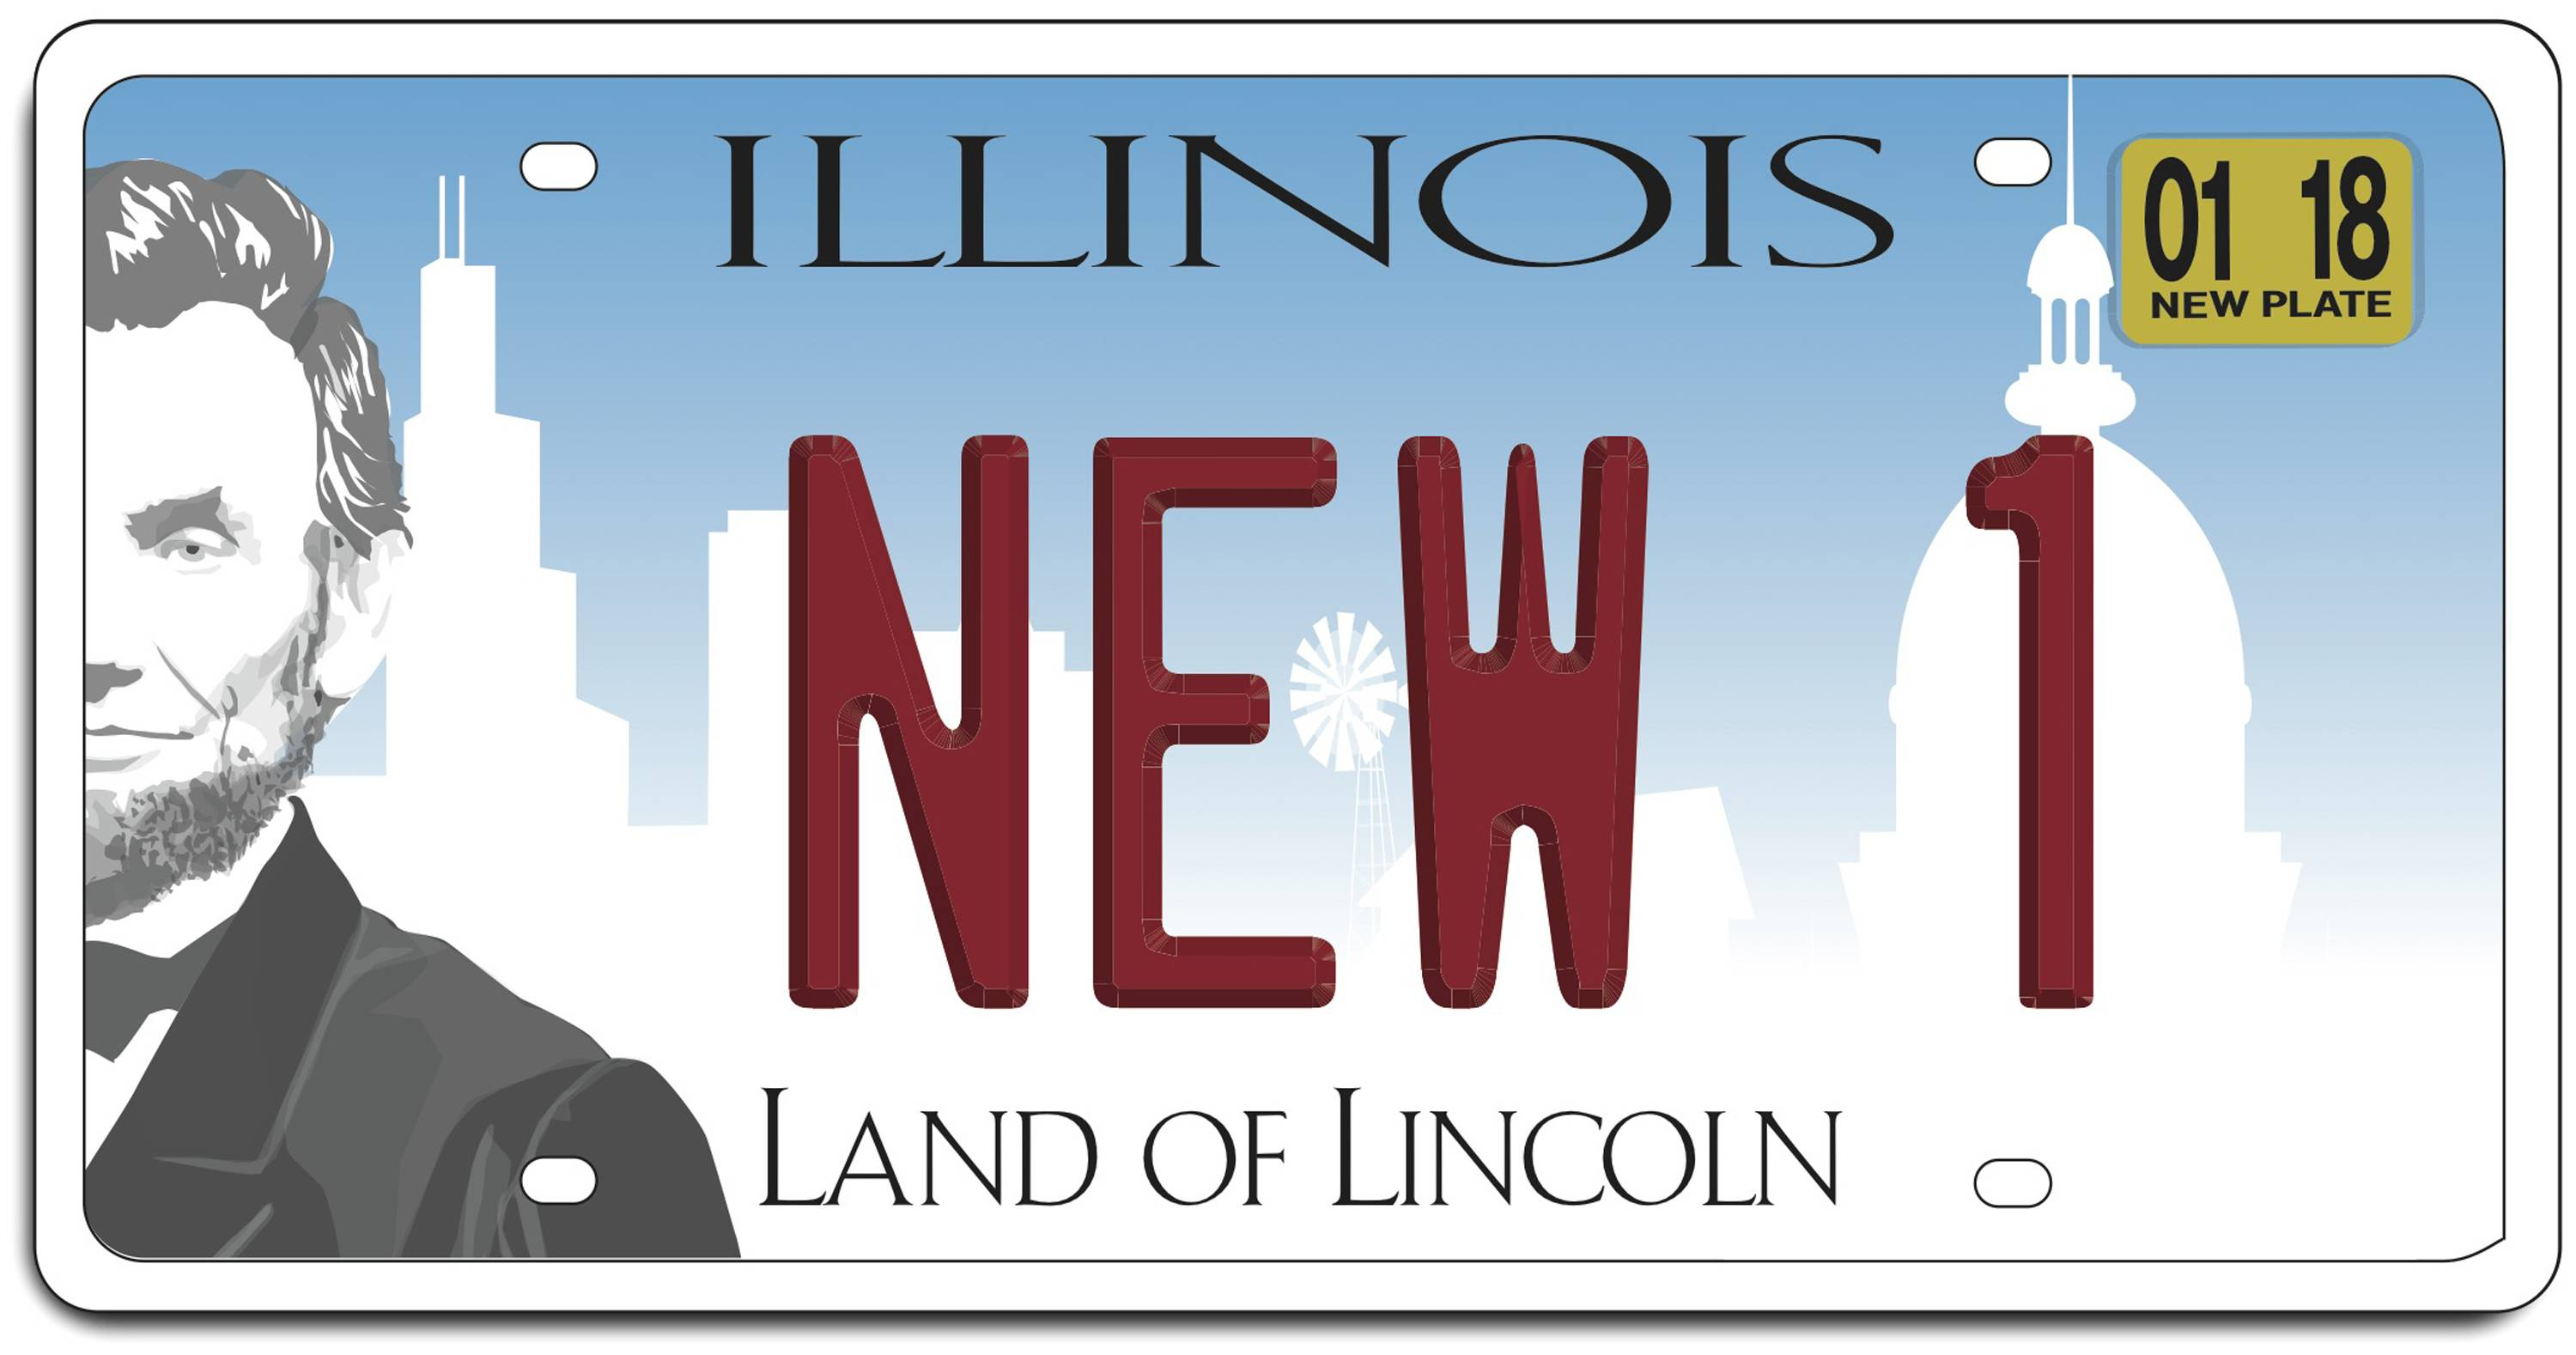 Newly redesigned Illinois license plates within state's budget